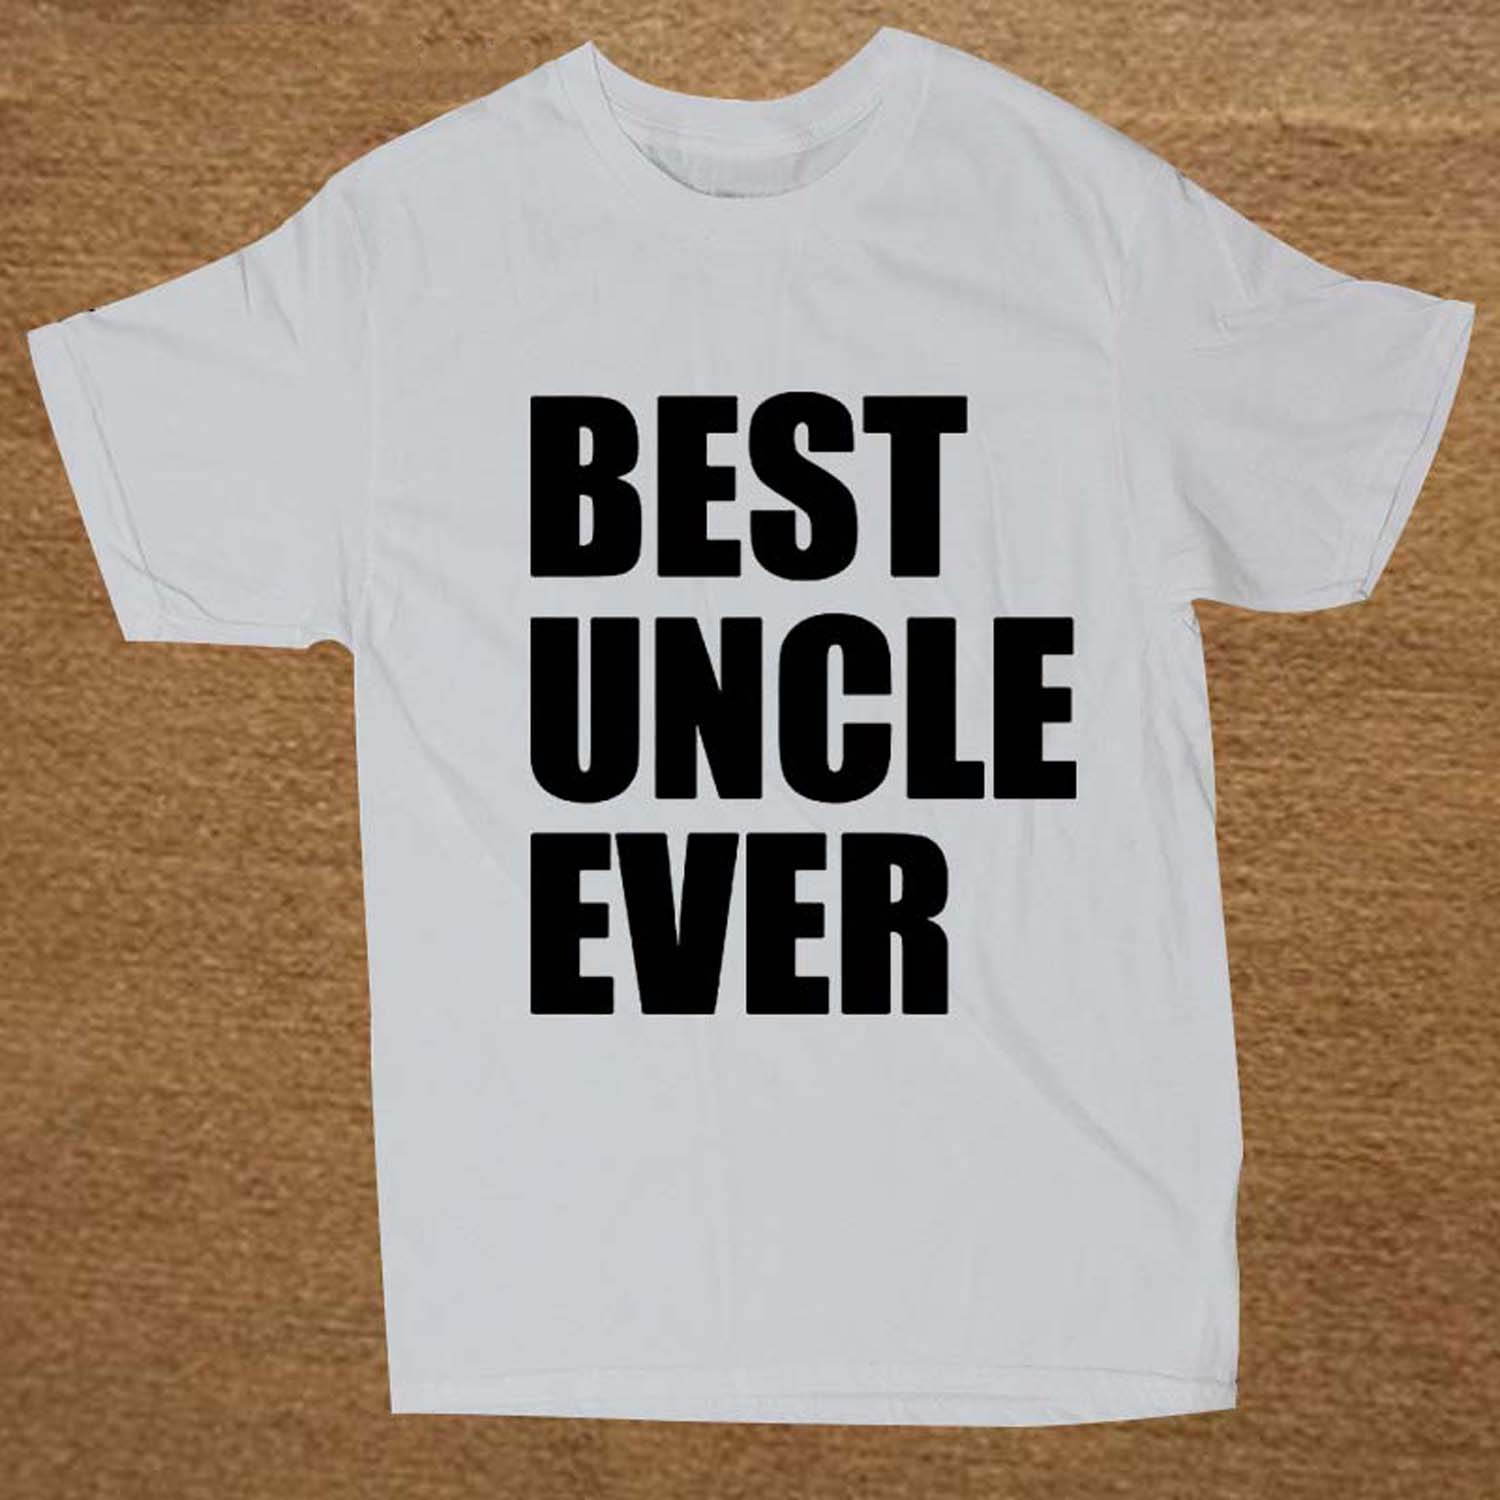 Fathers Day Gift Best Uncle Ever Adult T-shirt Tshirt Mens O Neck Short Sleeve Funny Uncle Gift Tee T Shirt